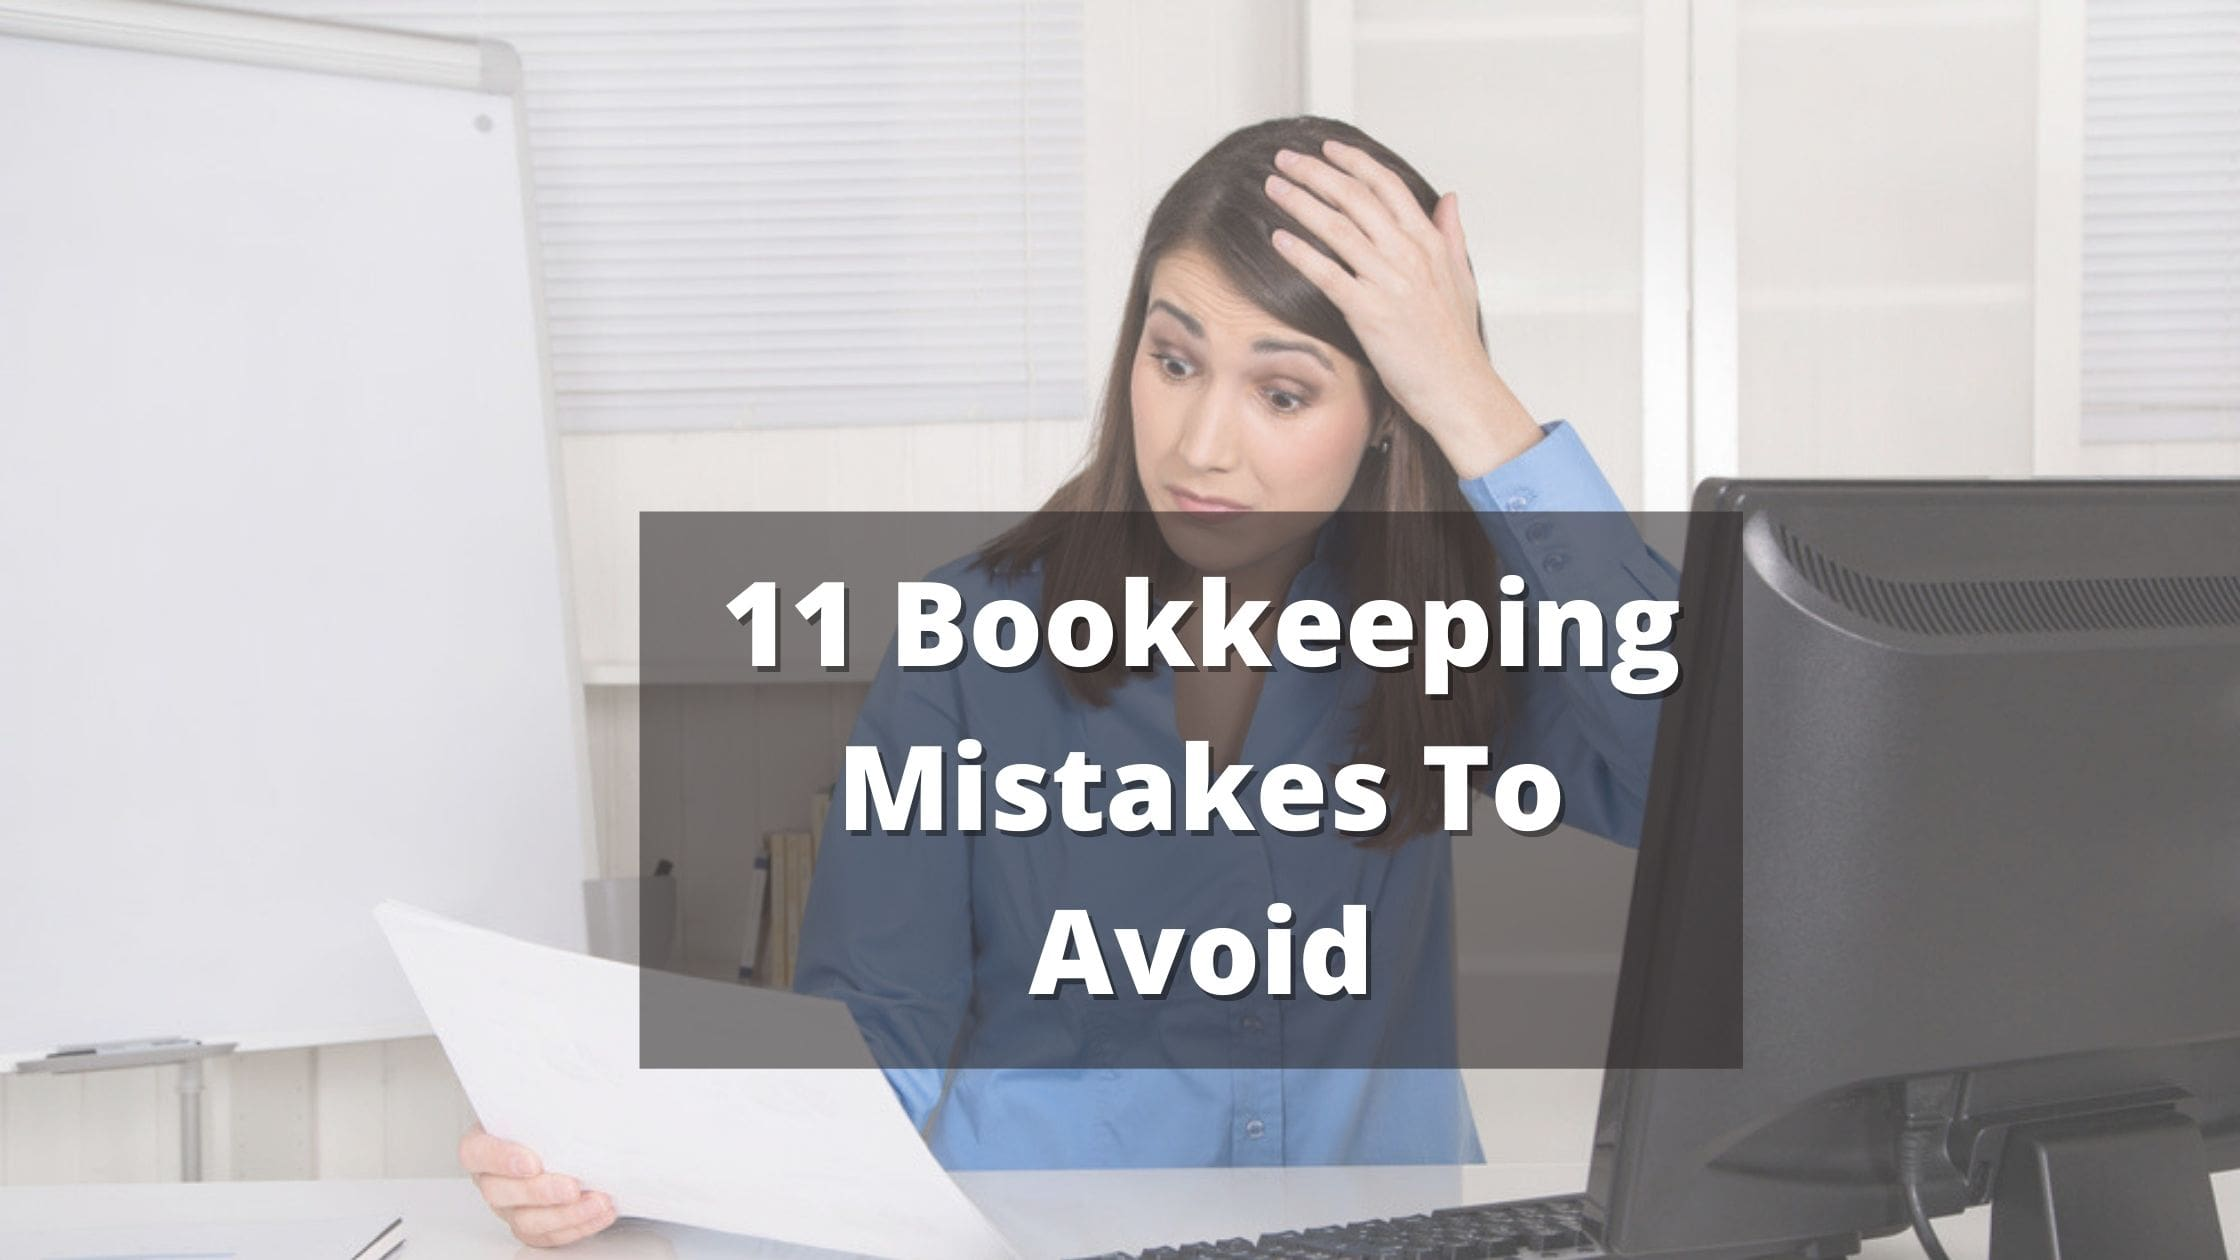 Bookkeeping Mistakes To Avoid